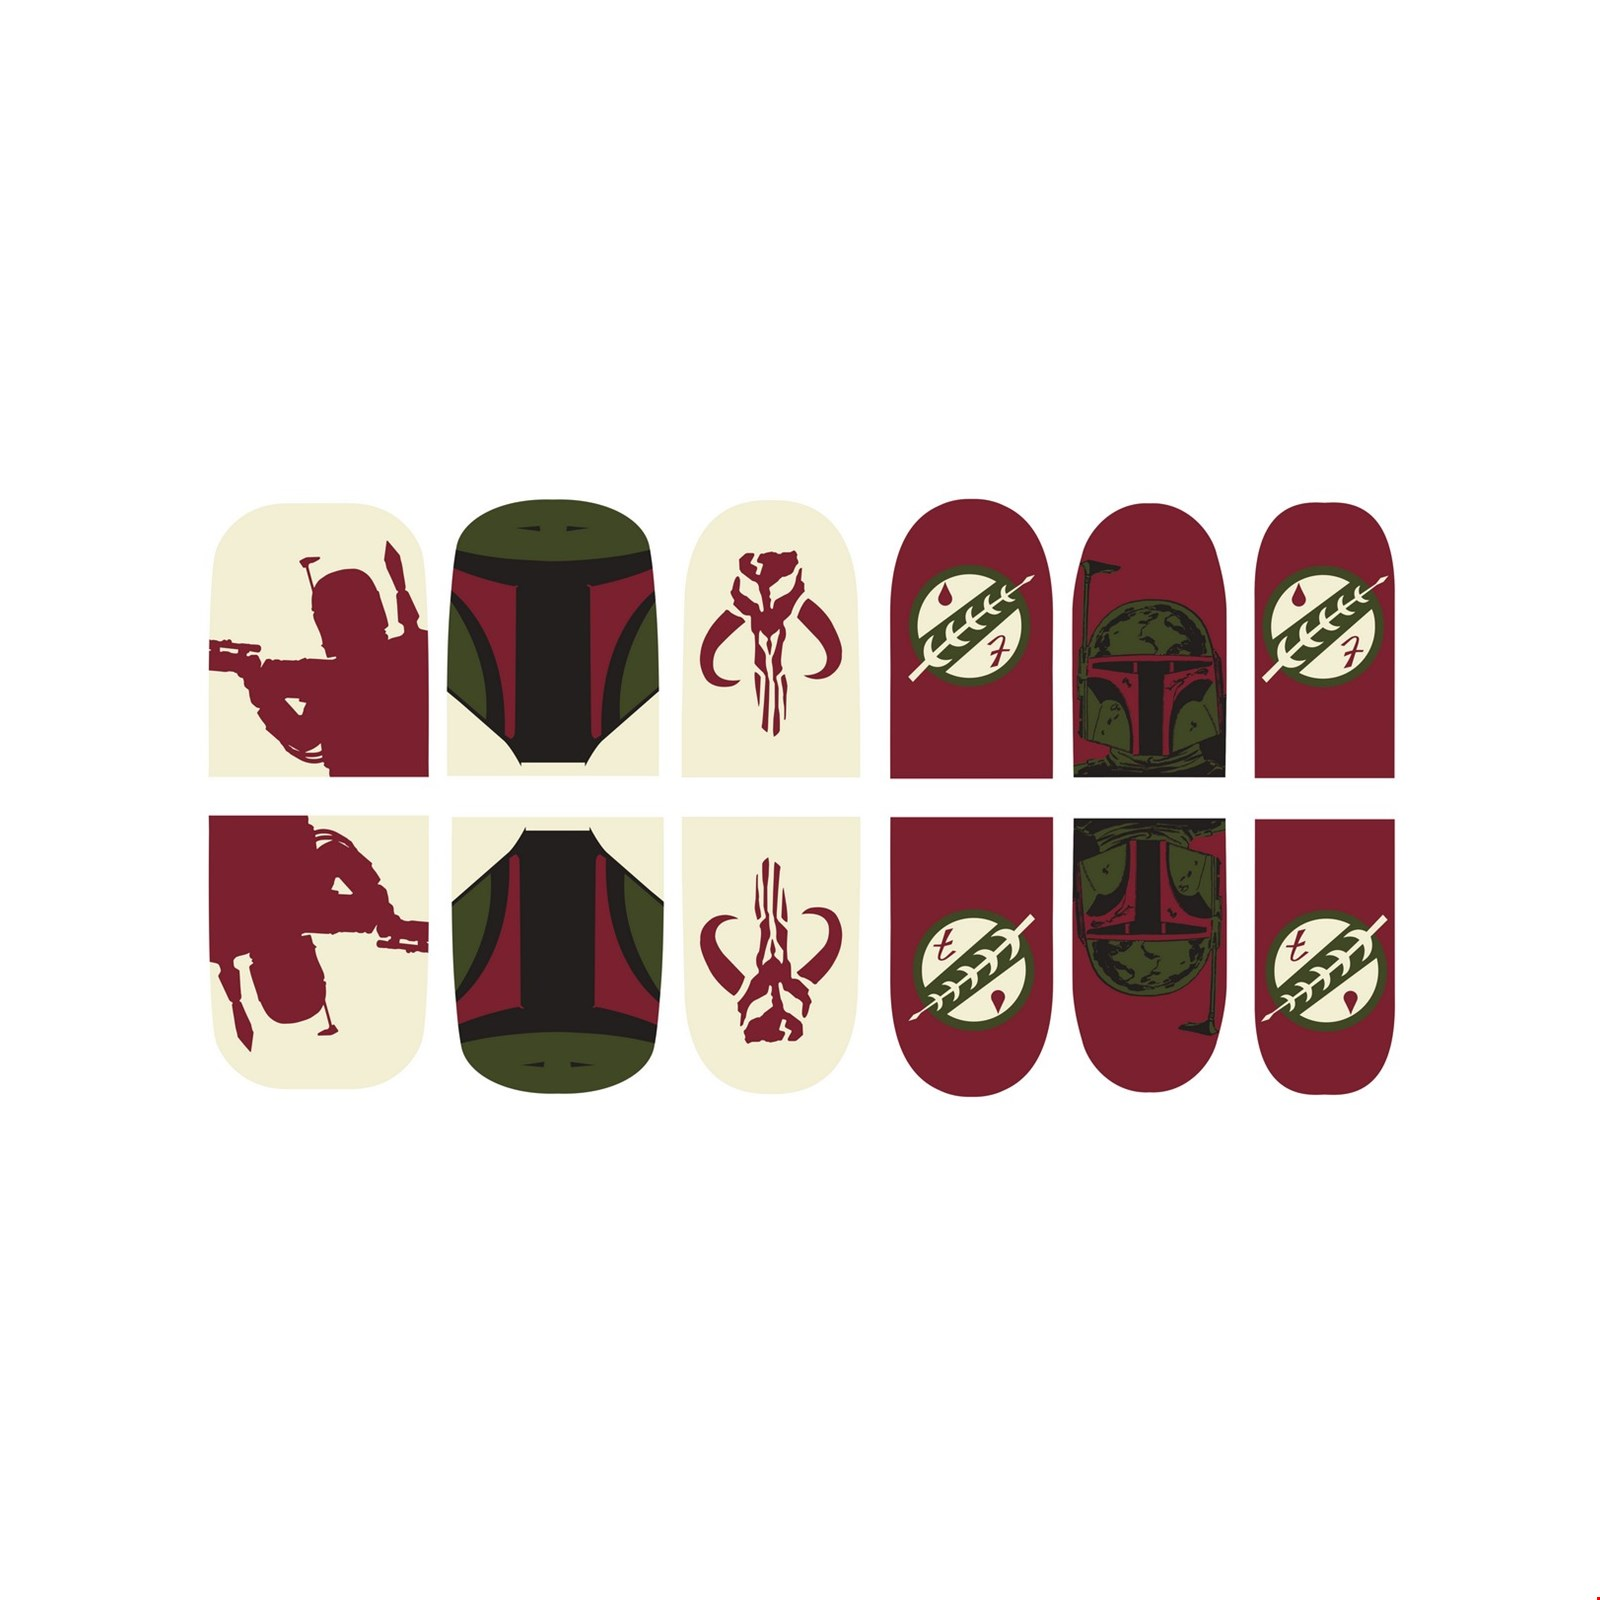 Star Wars Boba Fett Nail Stickers Halloween Costume Accessory